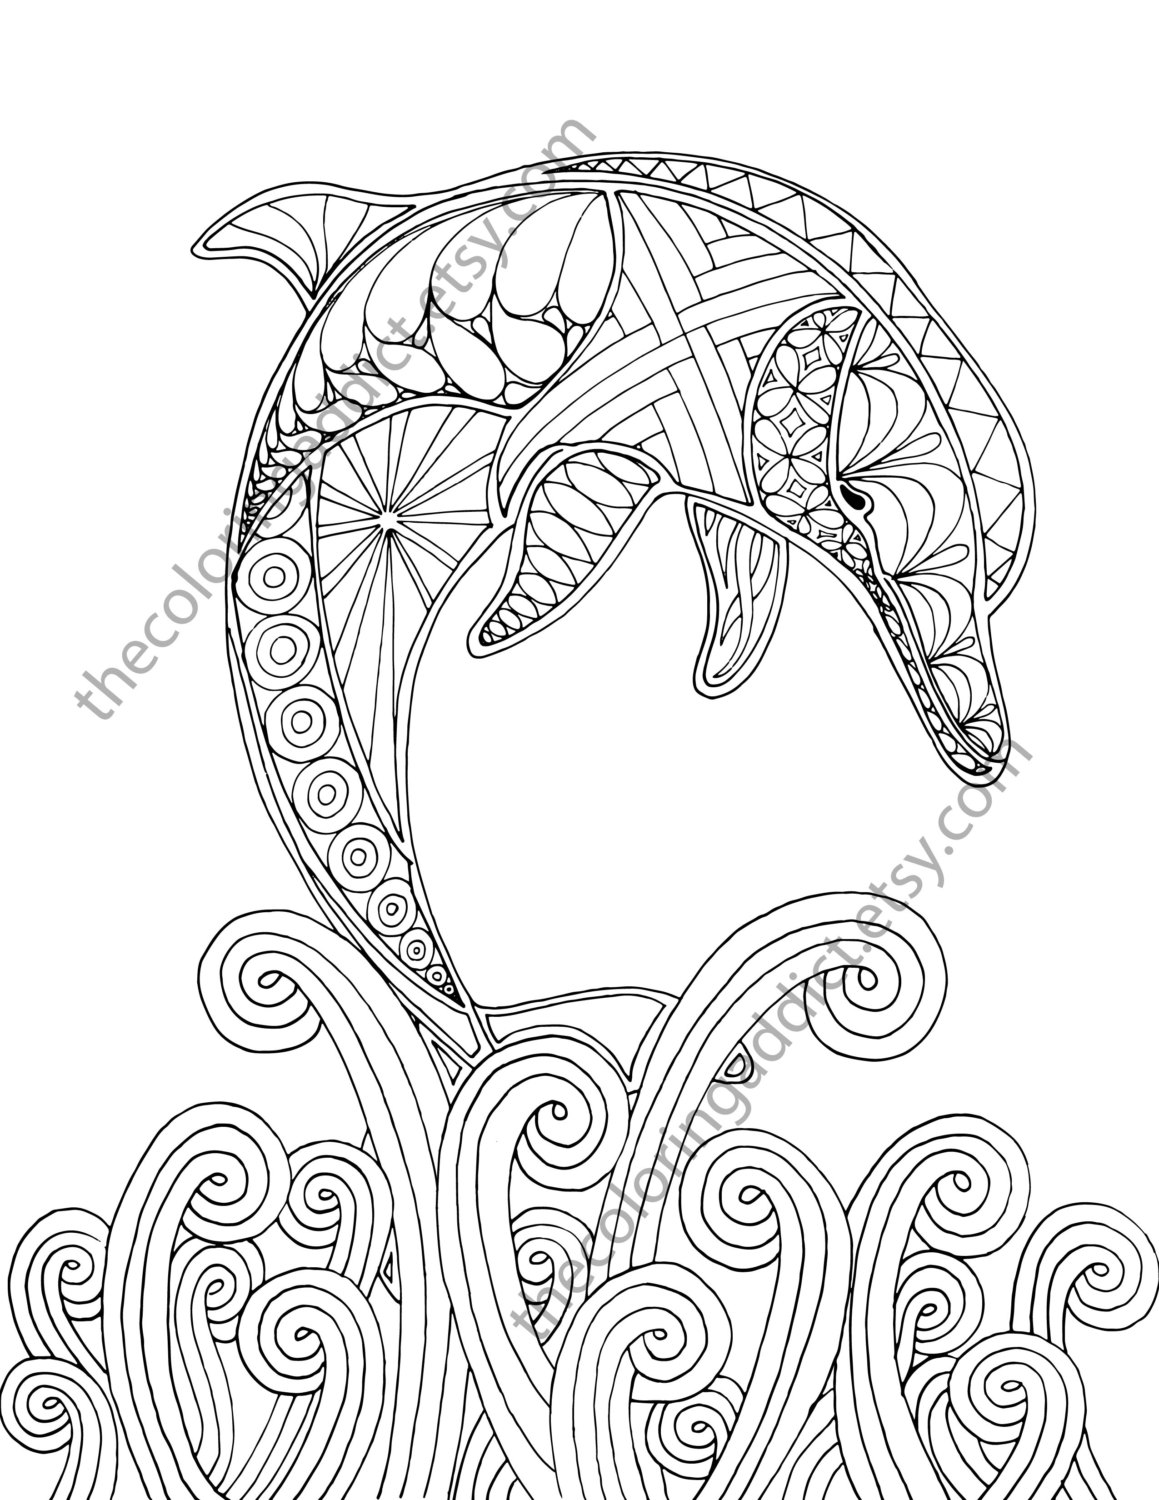 Dolphin Easy Drawing at GetDrawings.com | Free for personal use ...